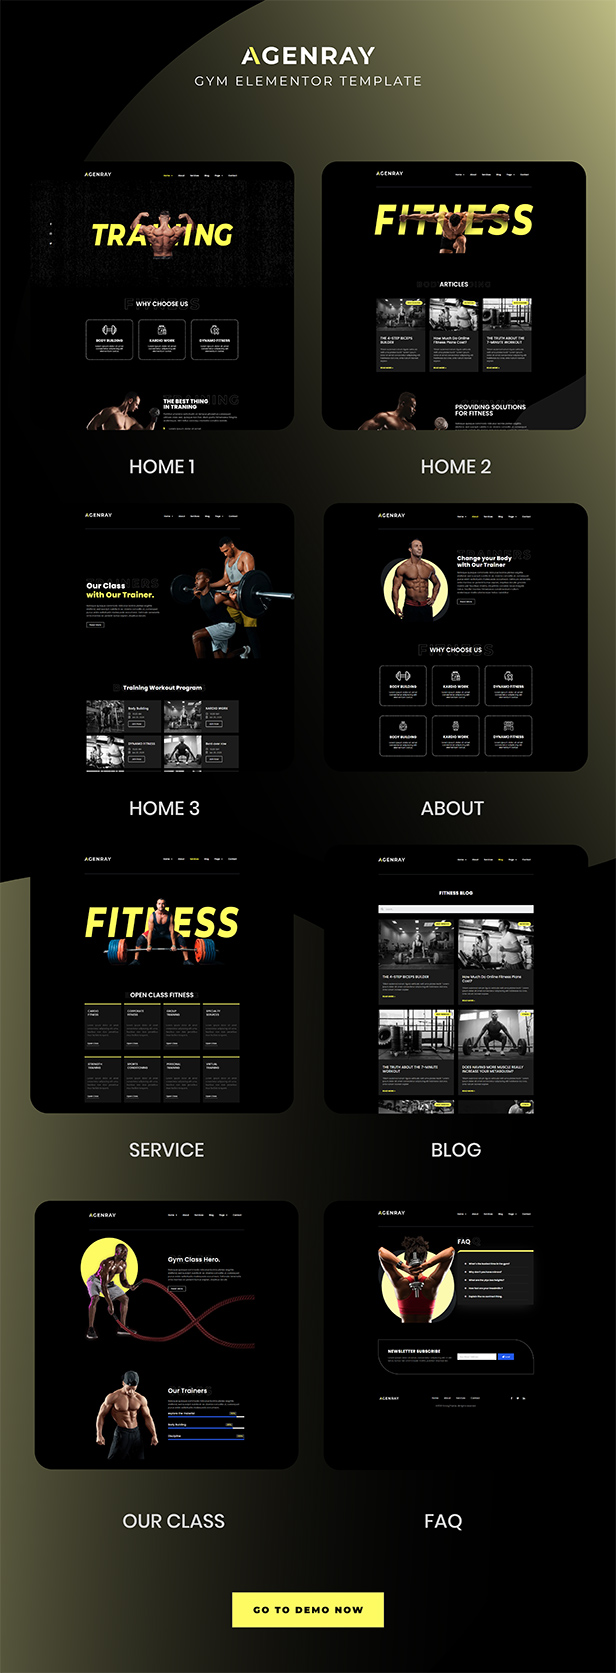 agenray gym template